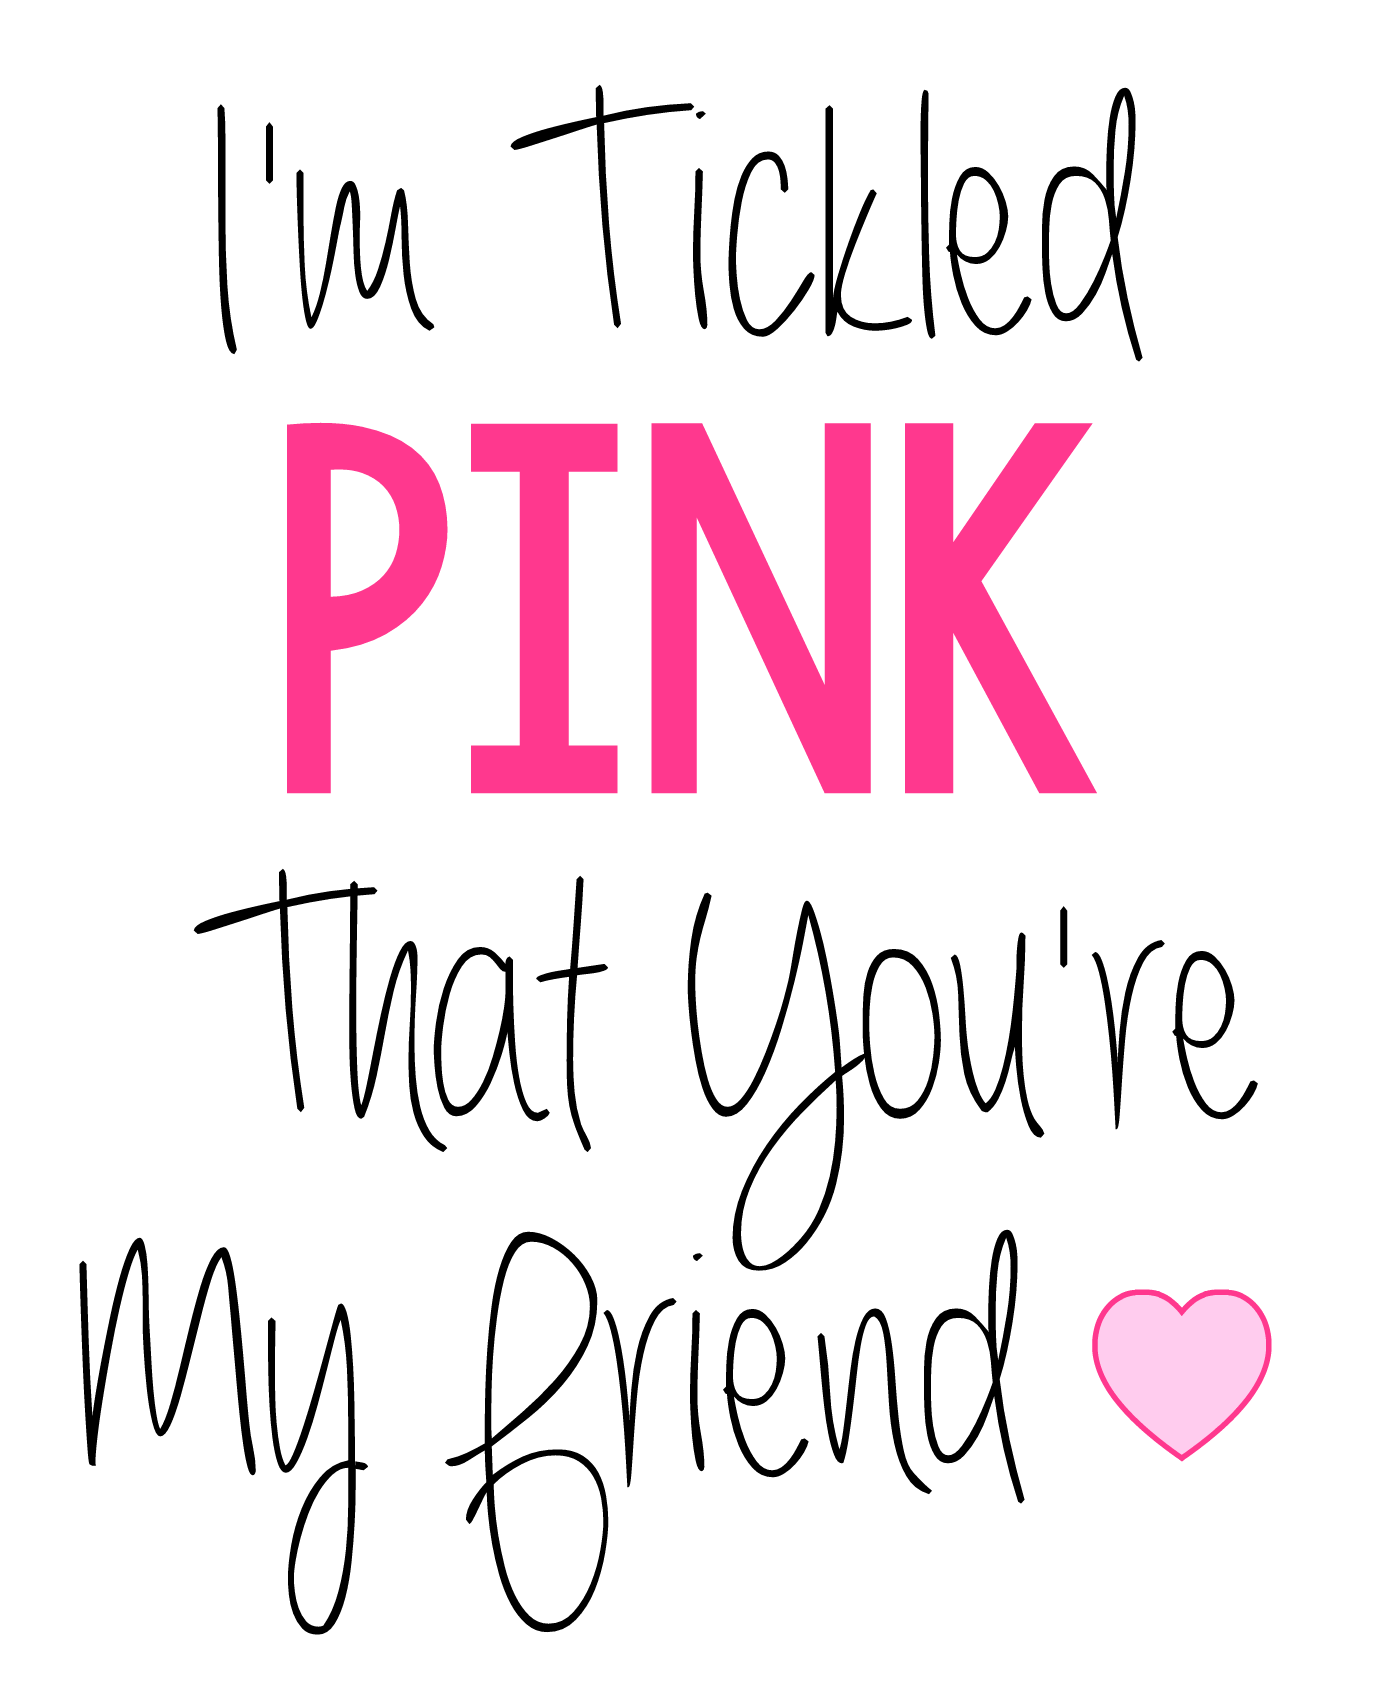 Tickled Pink Friend Gift Idea